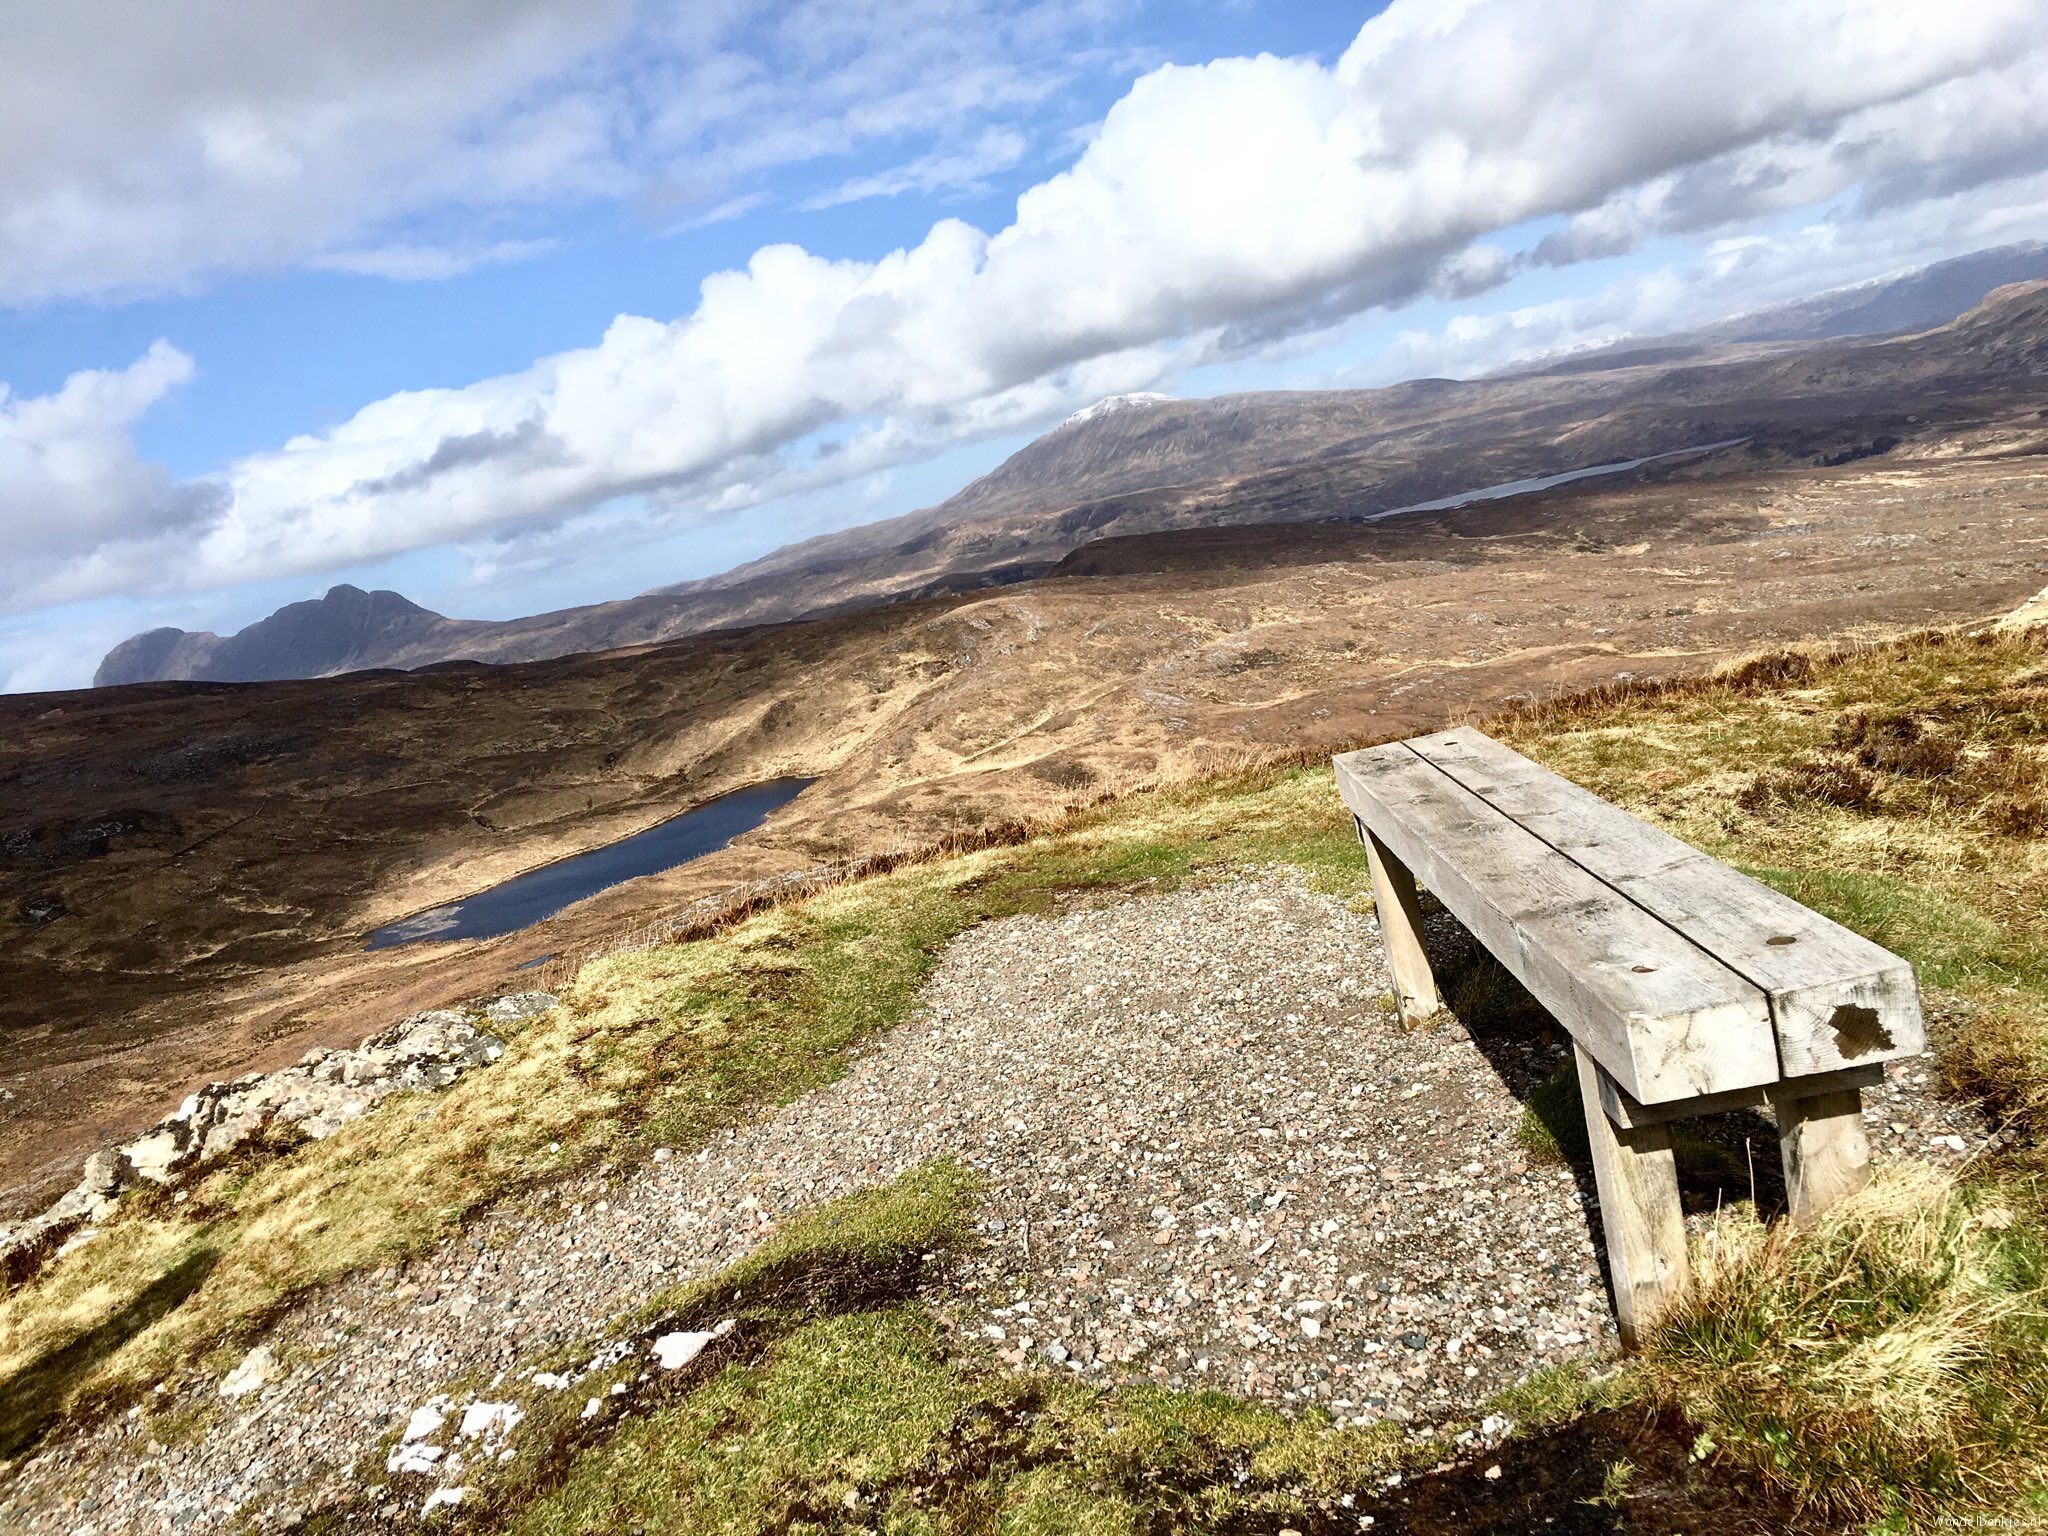 rt-slaletter-elphin-near-ullapool-%e2%81%a6walkersbenches%e2%81%a9-https-t-co-fif7s0qtva